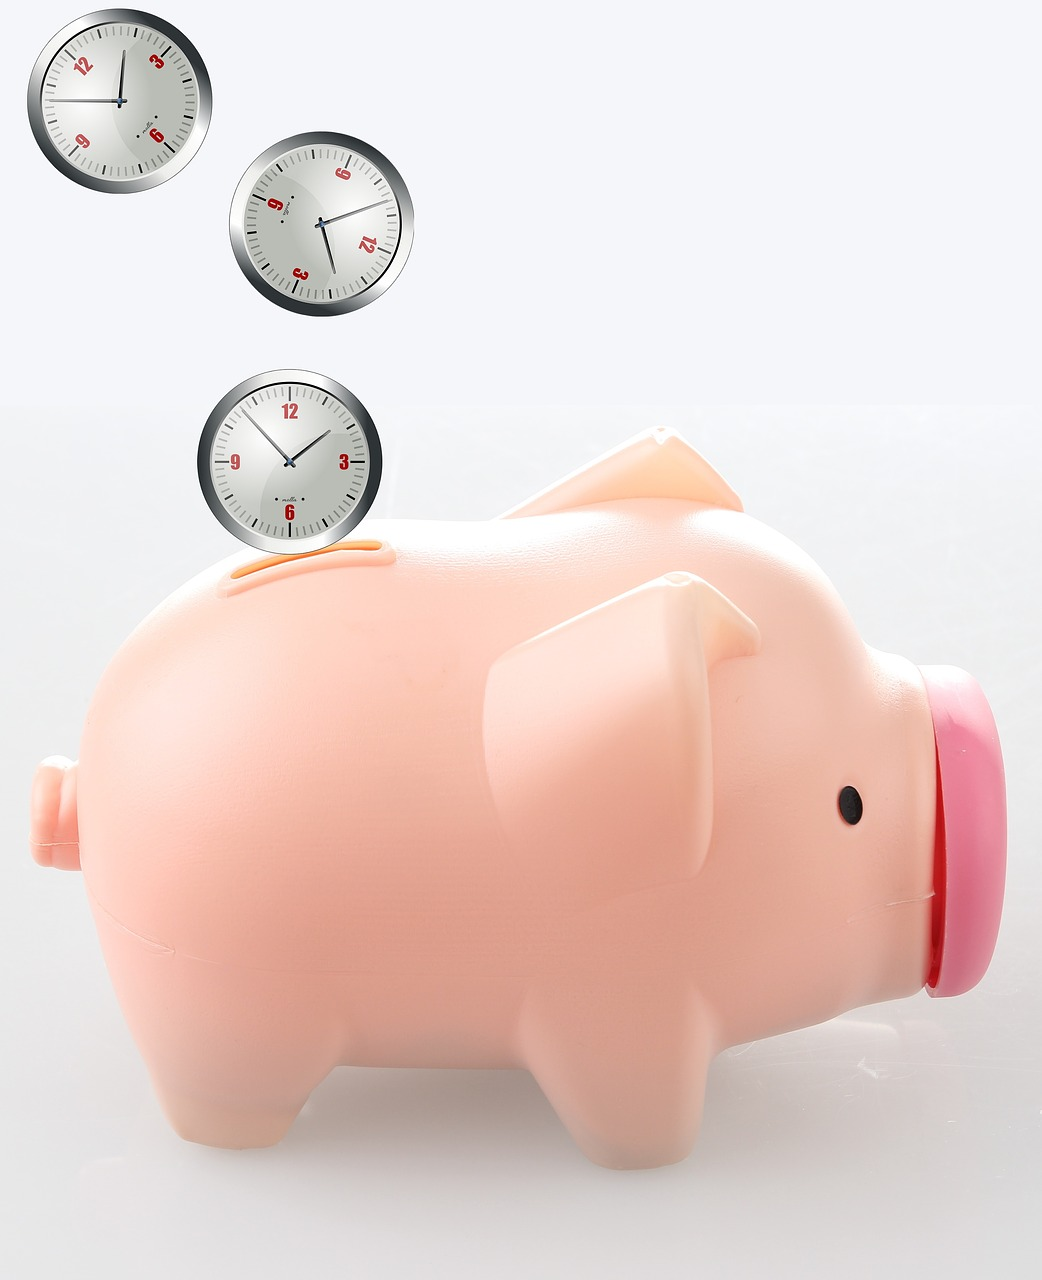 Clocks entering piggy bank slot